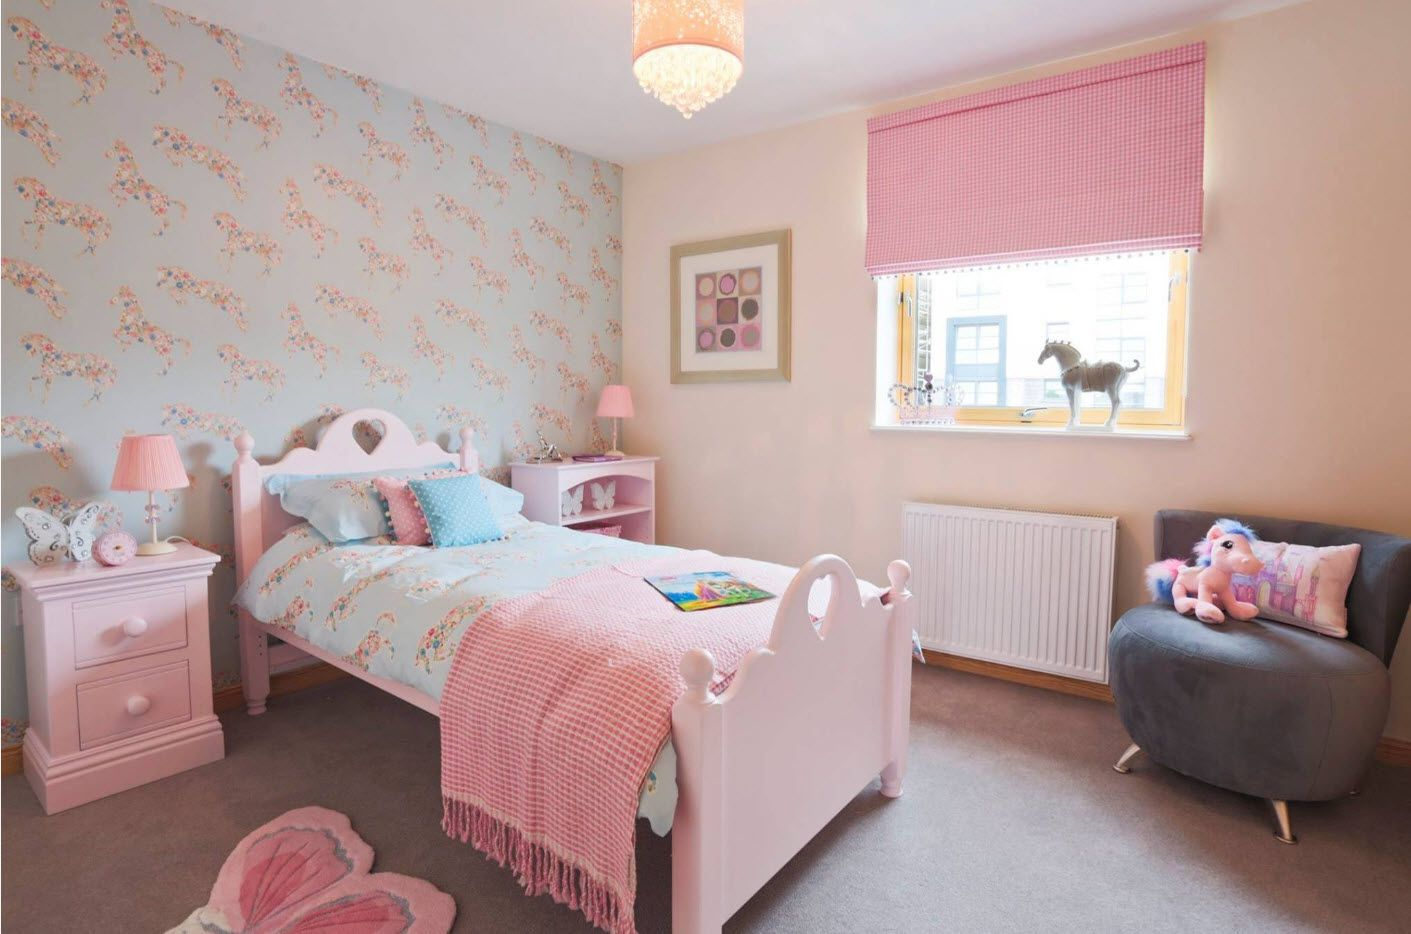 Pink and creamy palette for bright homey mood of the children's room